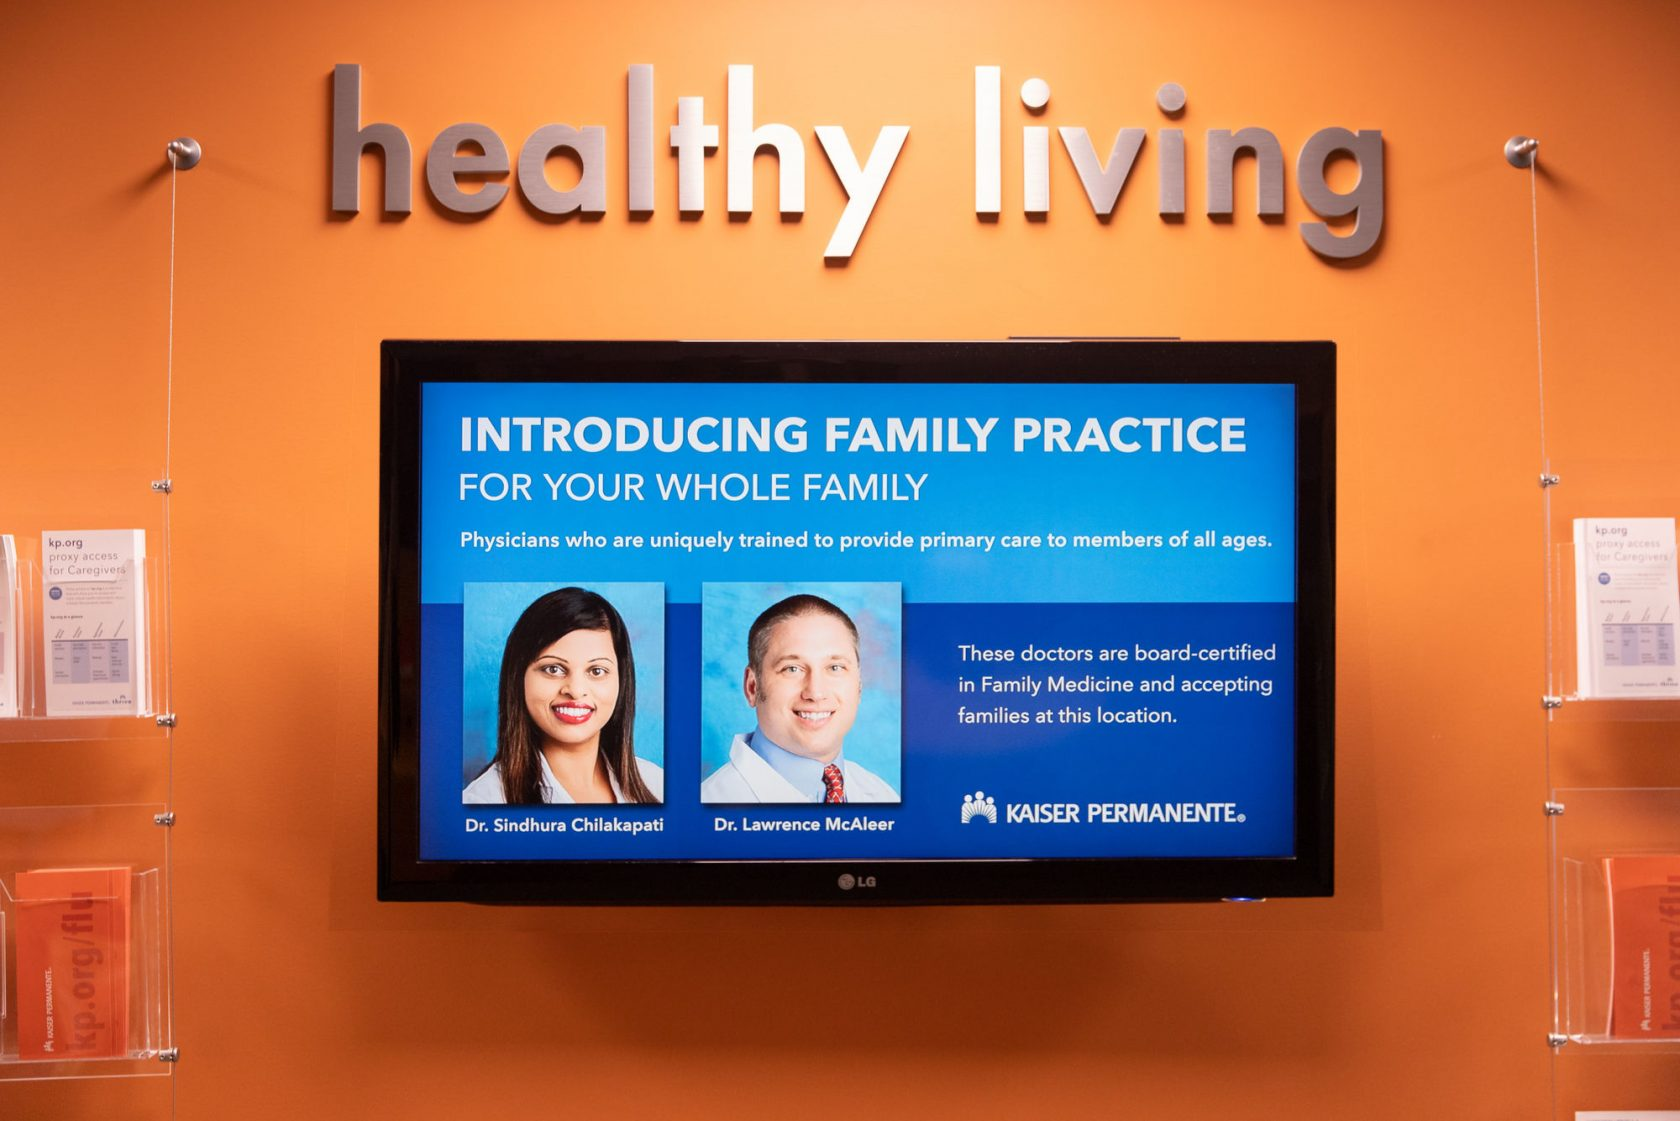 Kaiser Permanente - Healthy Living